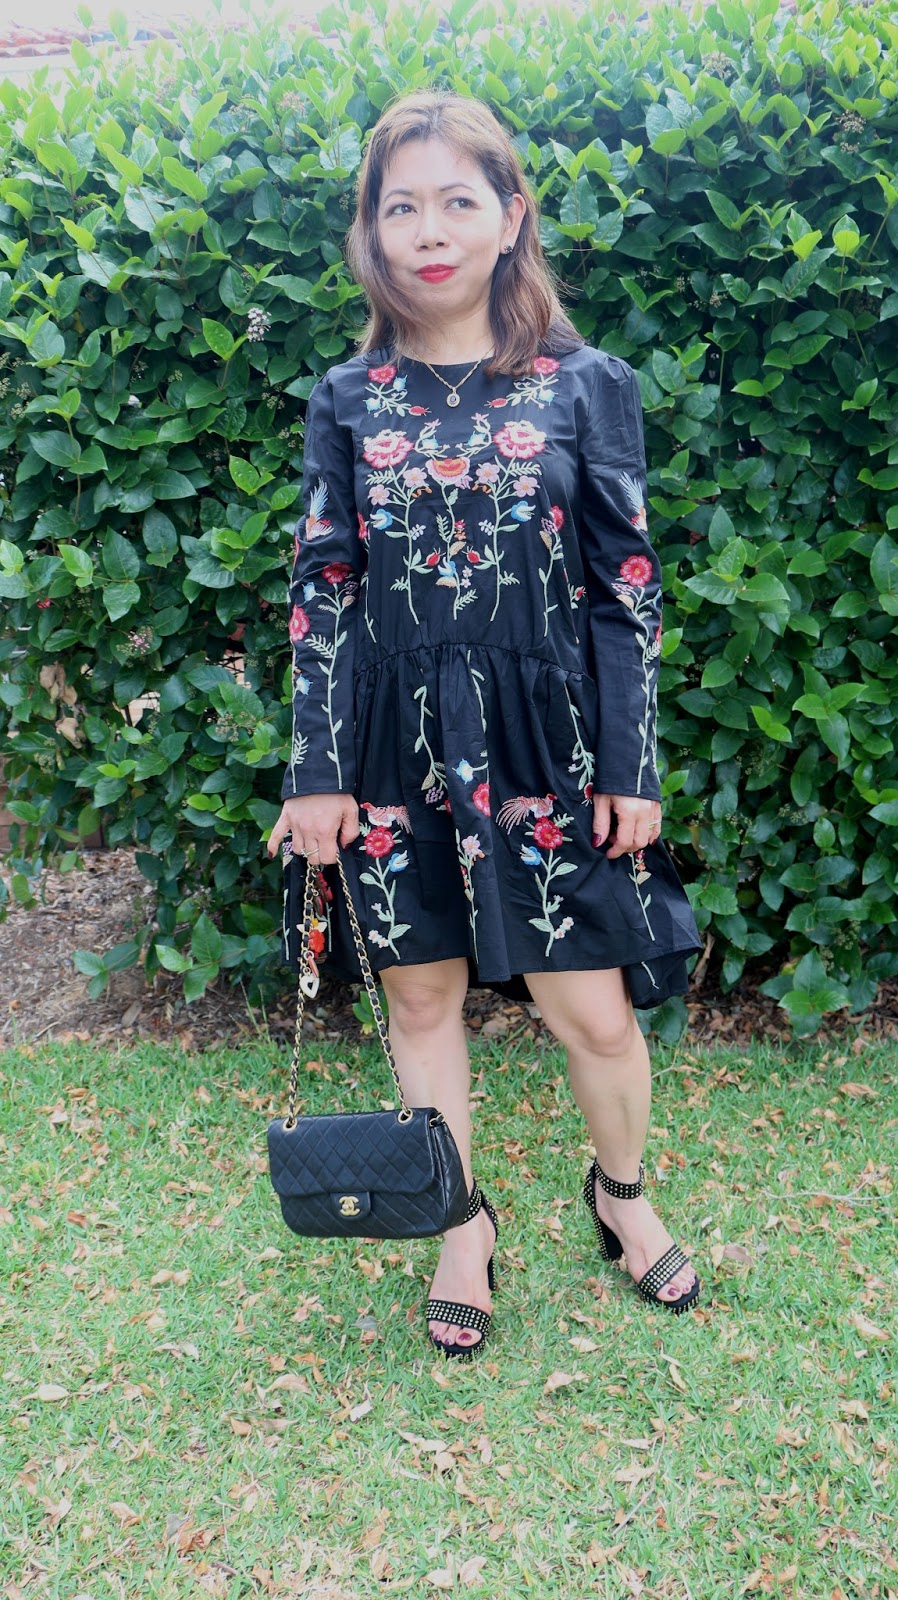 Floral Embroidery Trend